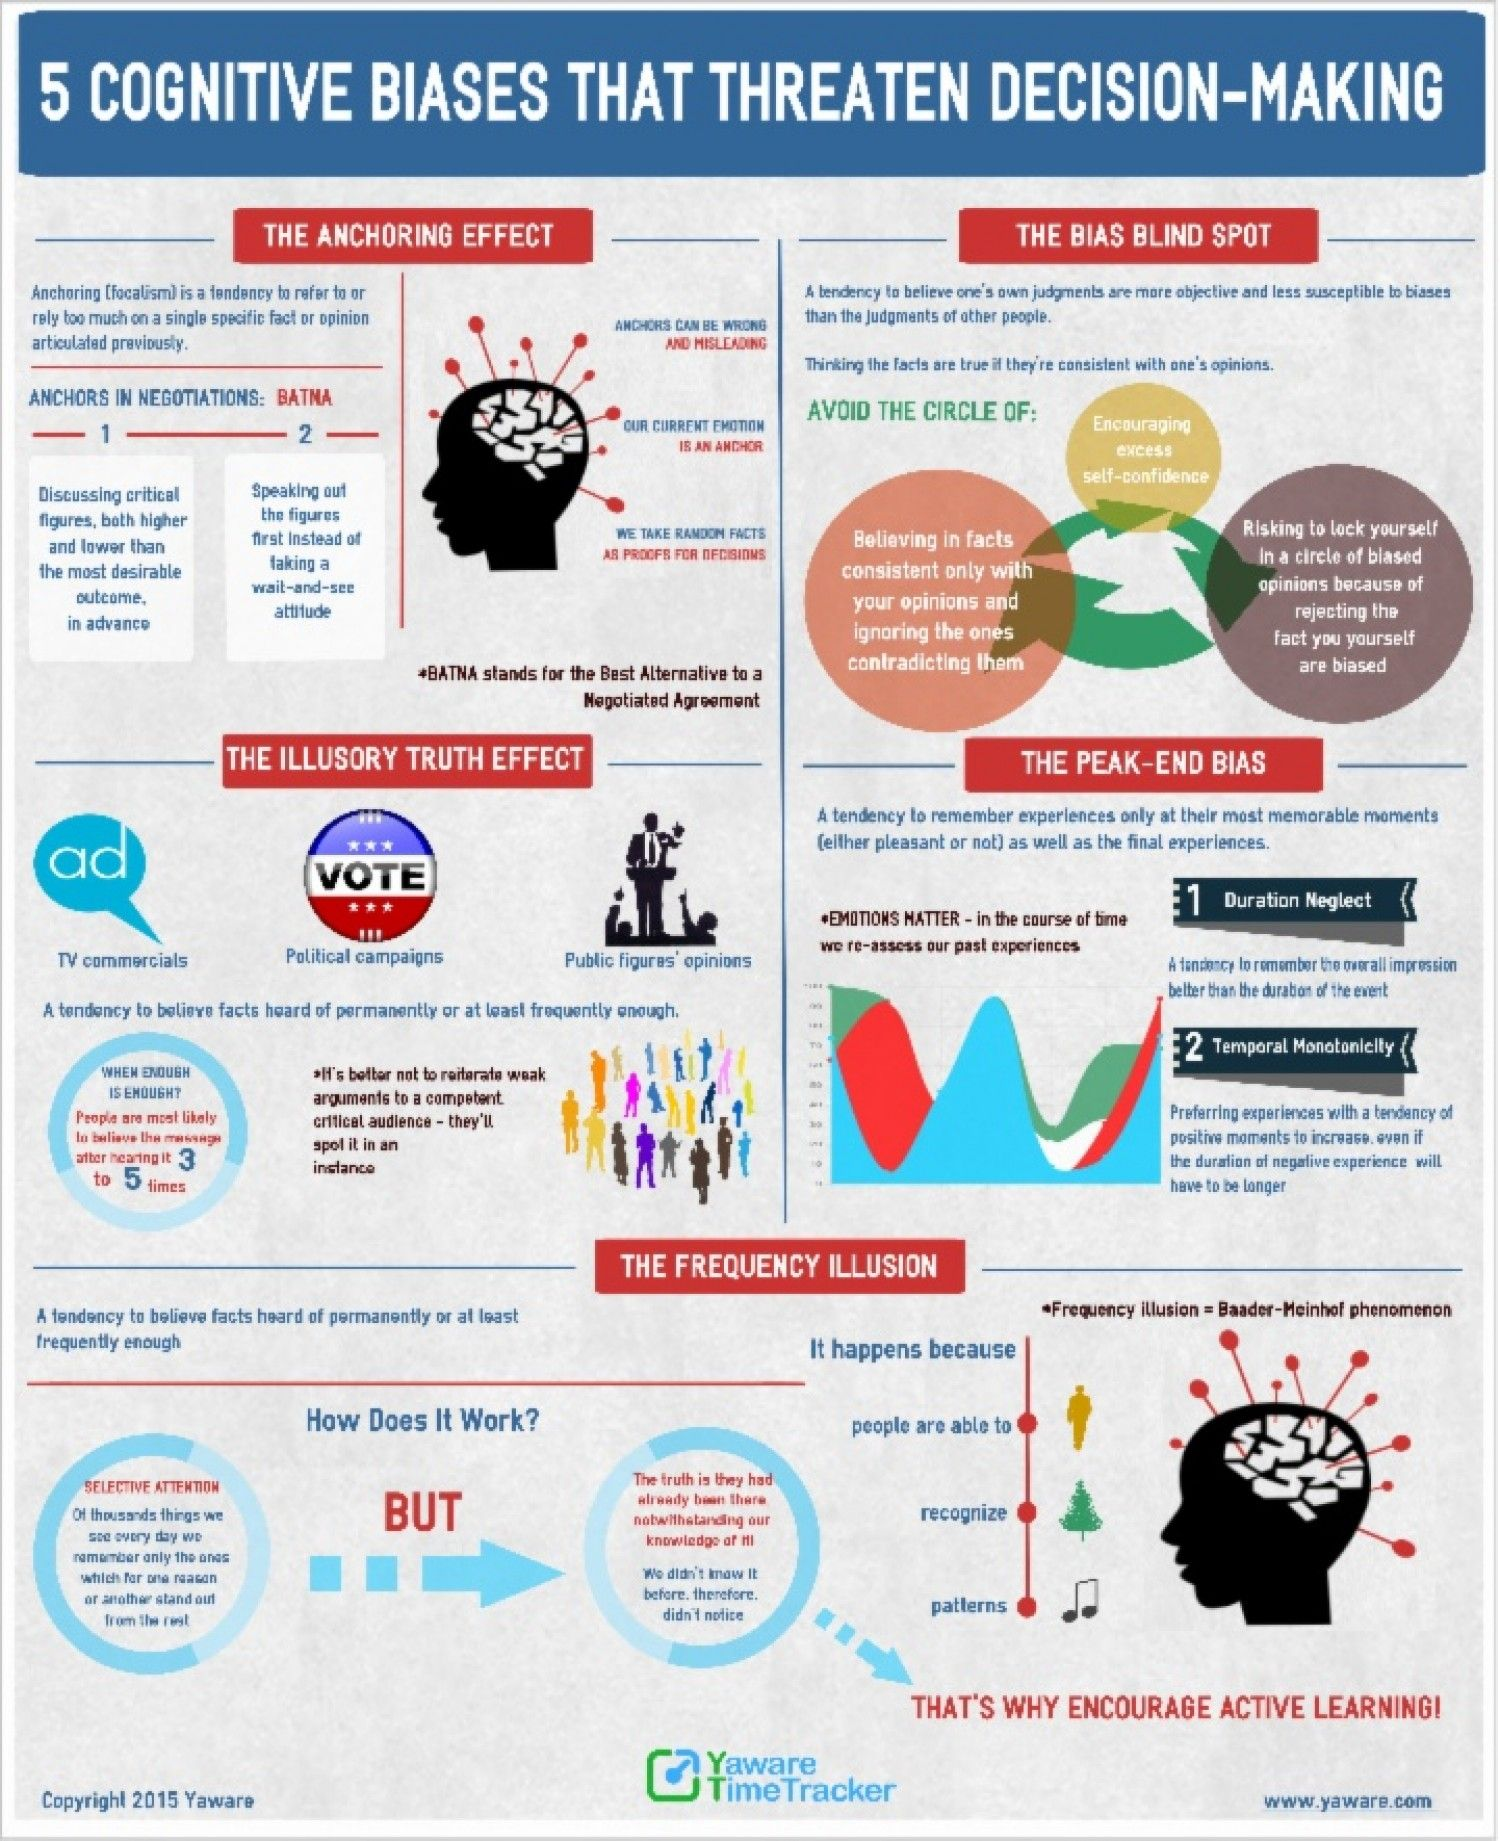 5 Cognitive Biases That Threaten Decision Making